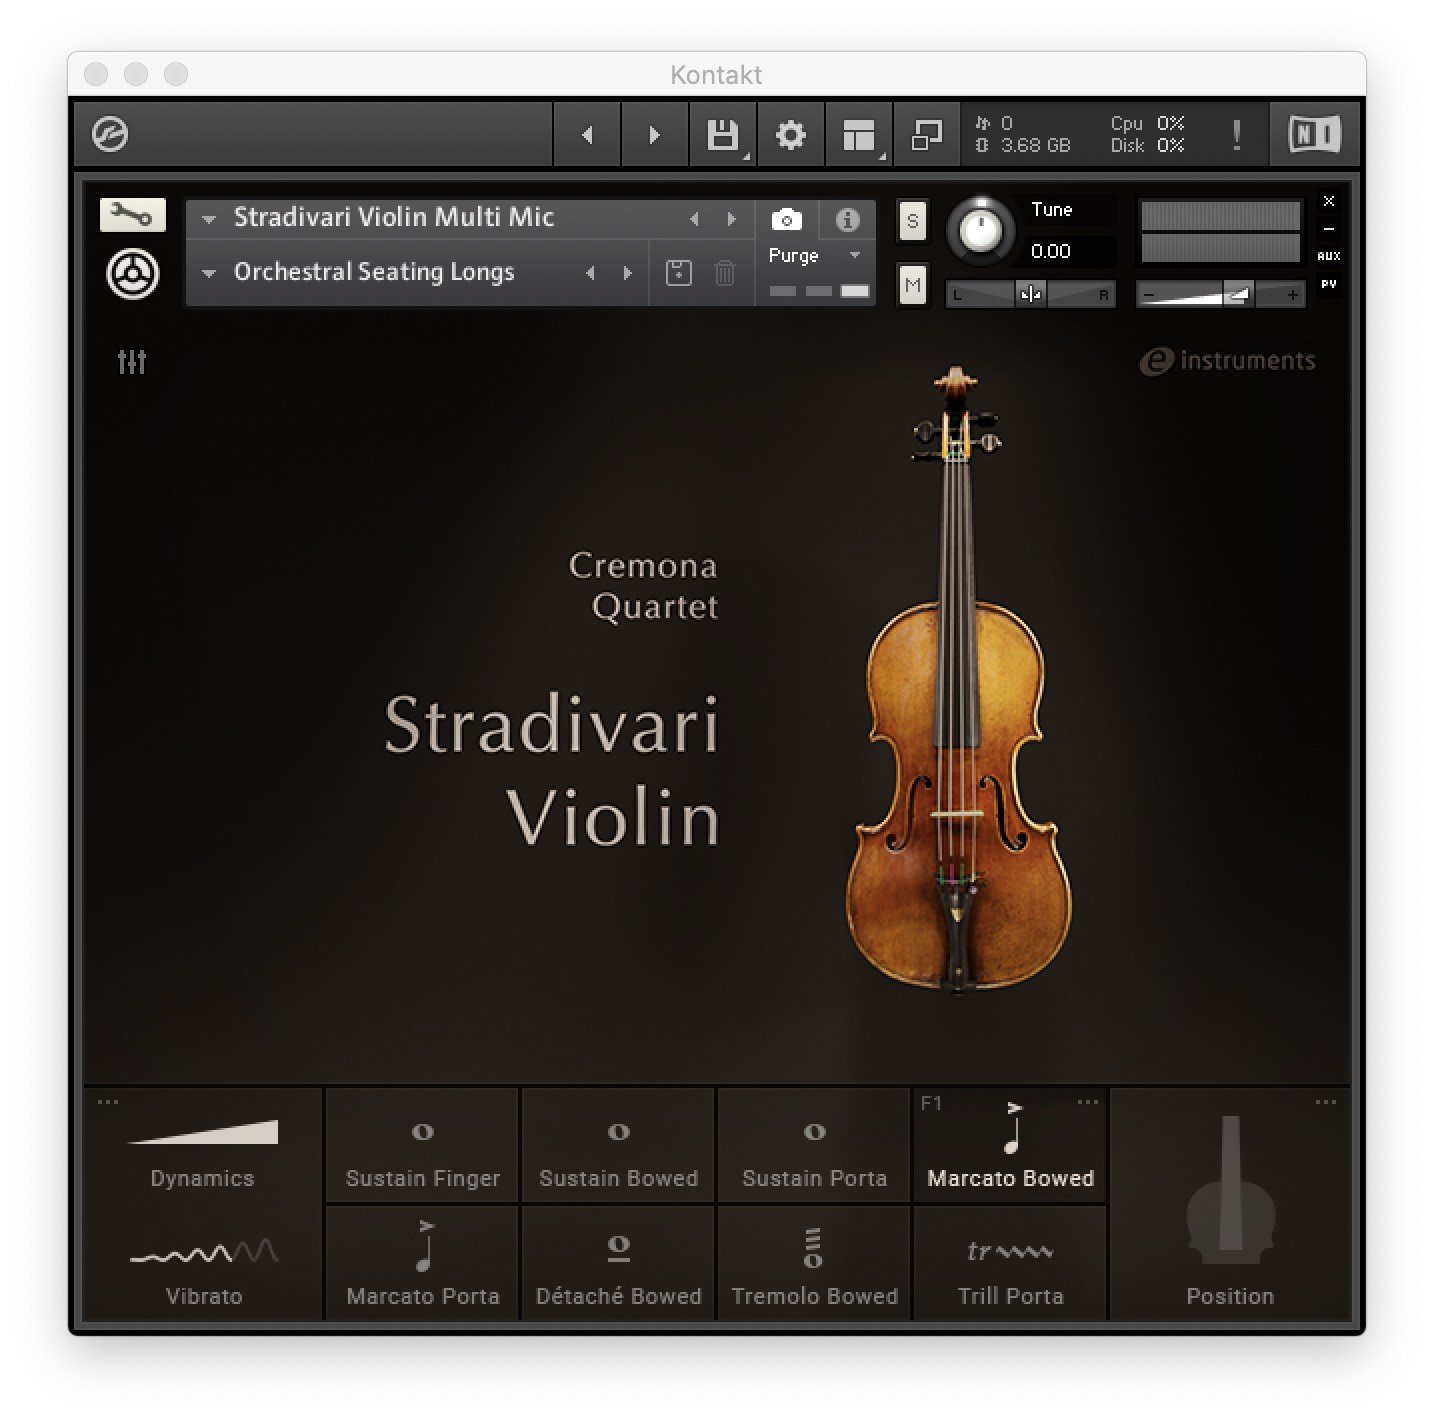 Cremona-Quartet-Stradivari-Violin-e-instruments-Native-Instruments